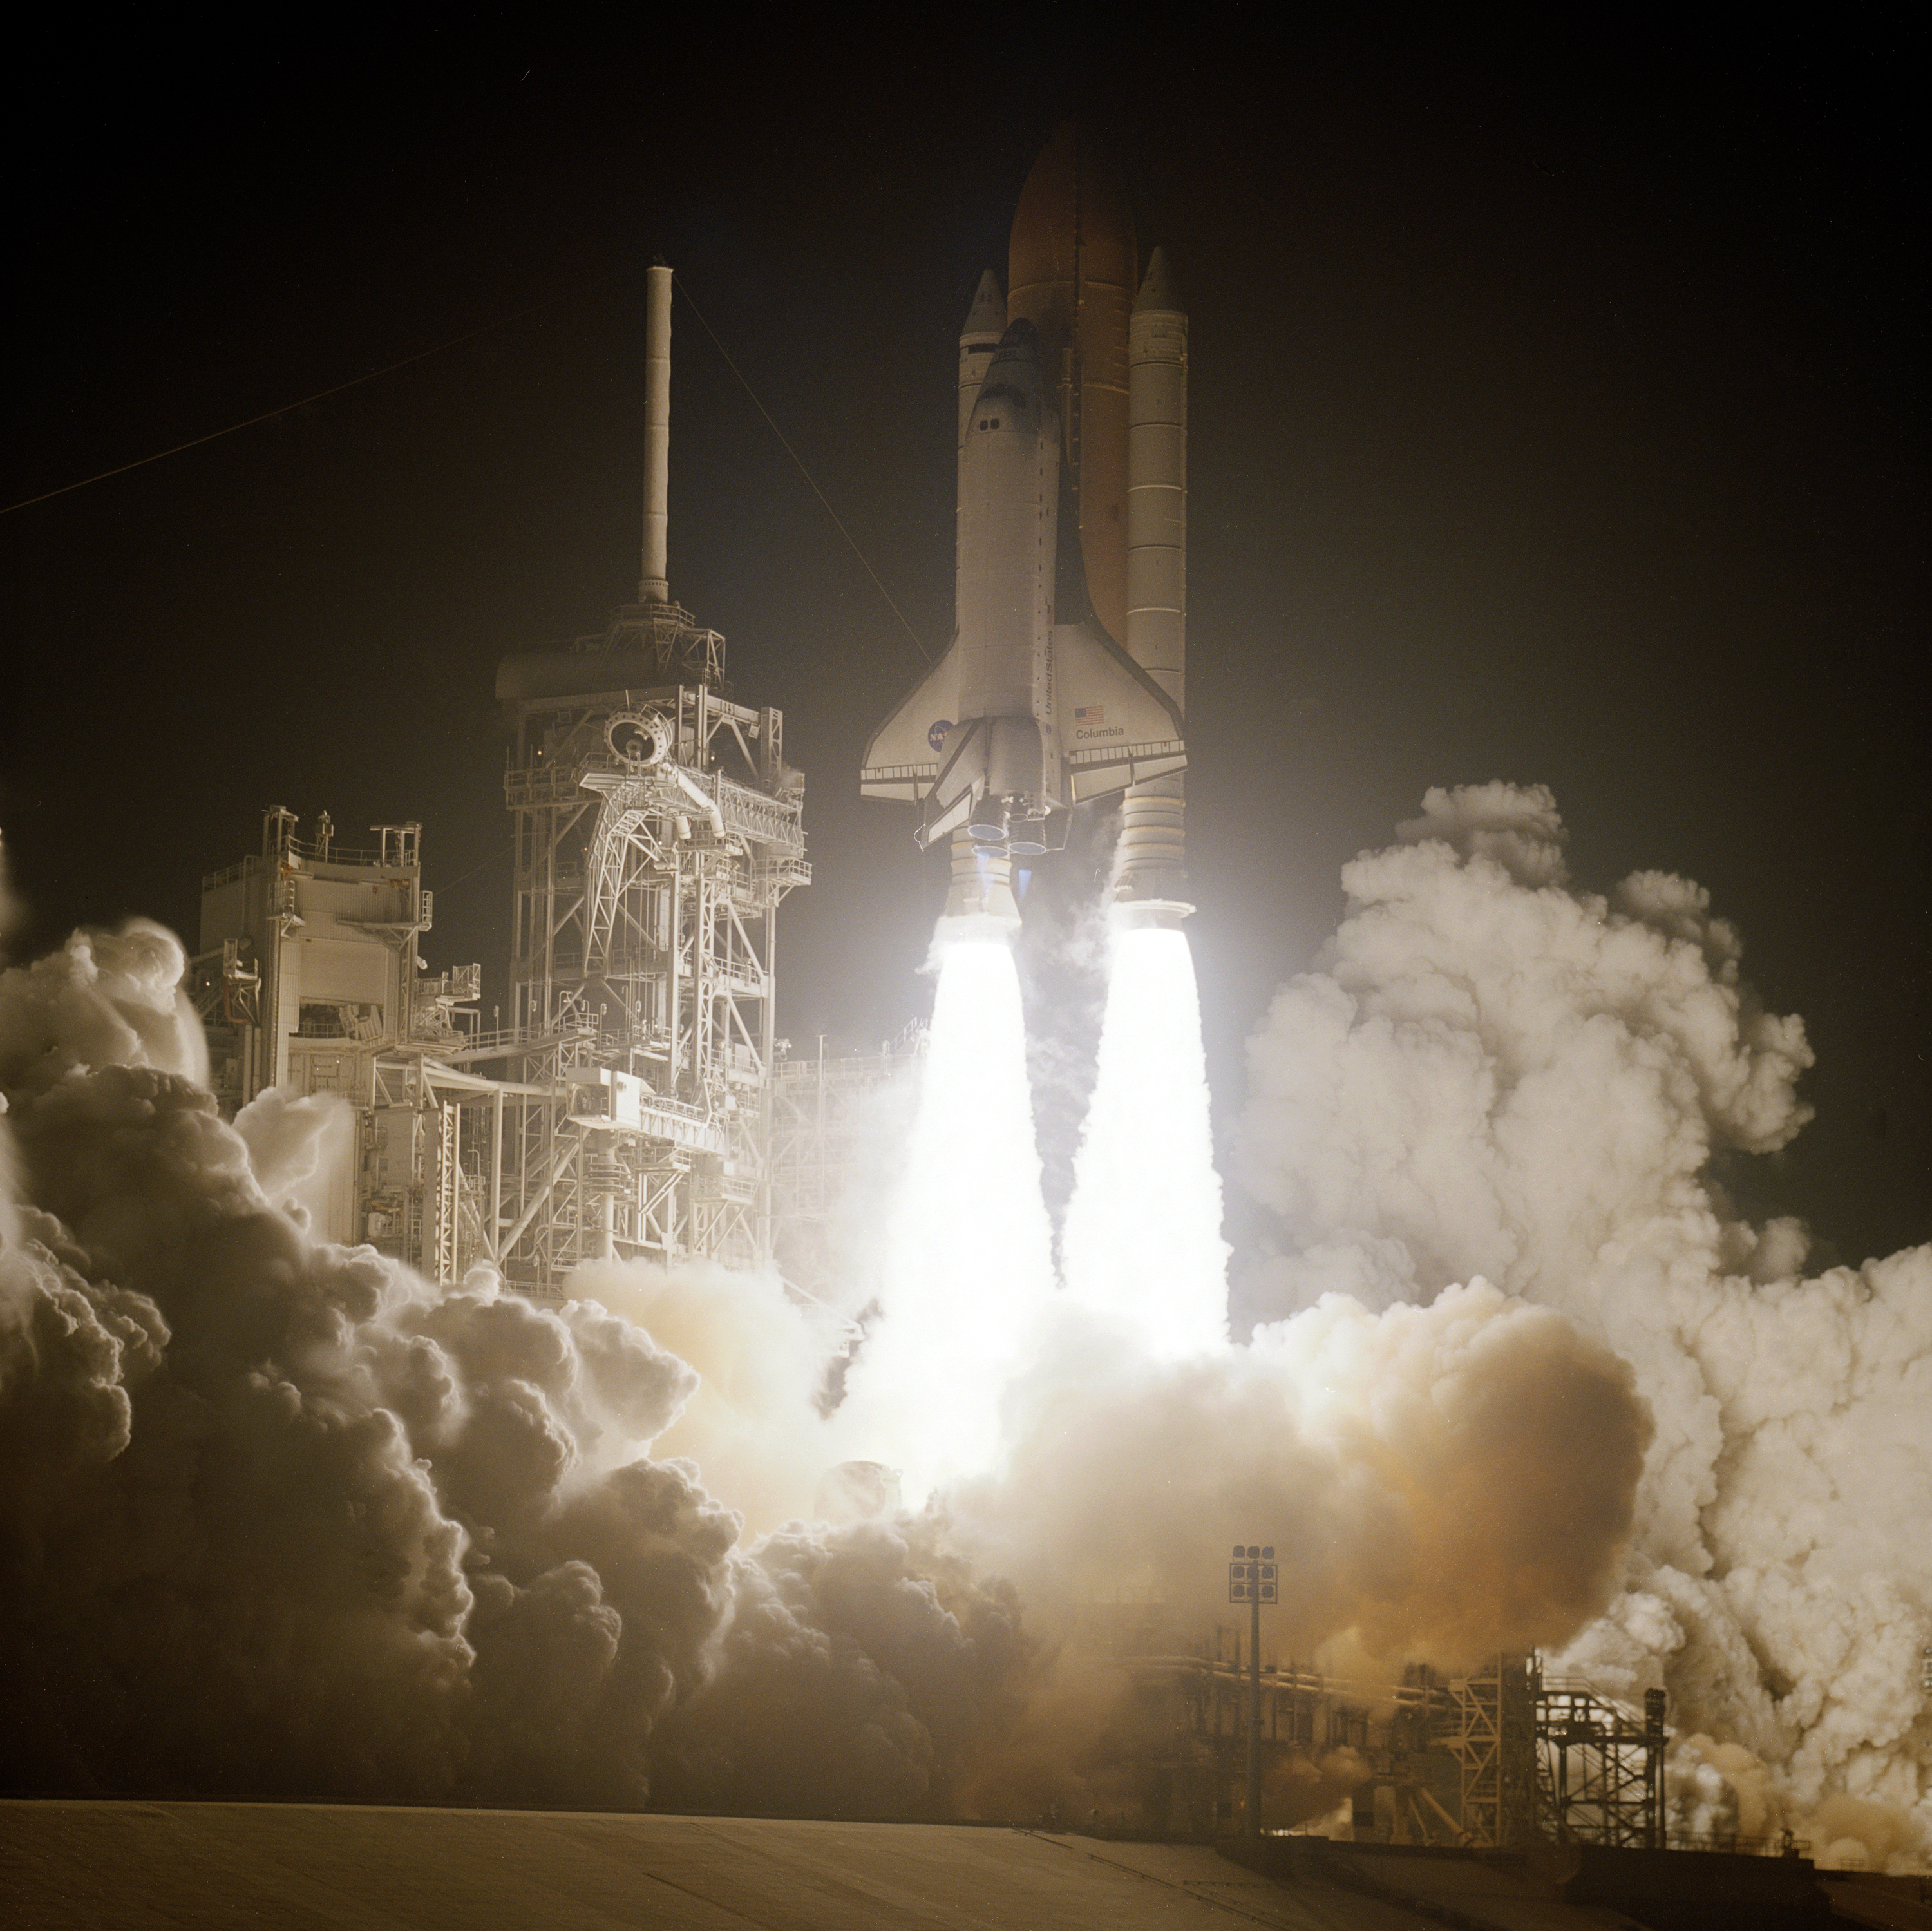 space shuttle columbia first mission - photo #25